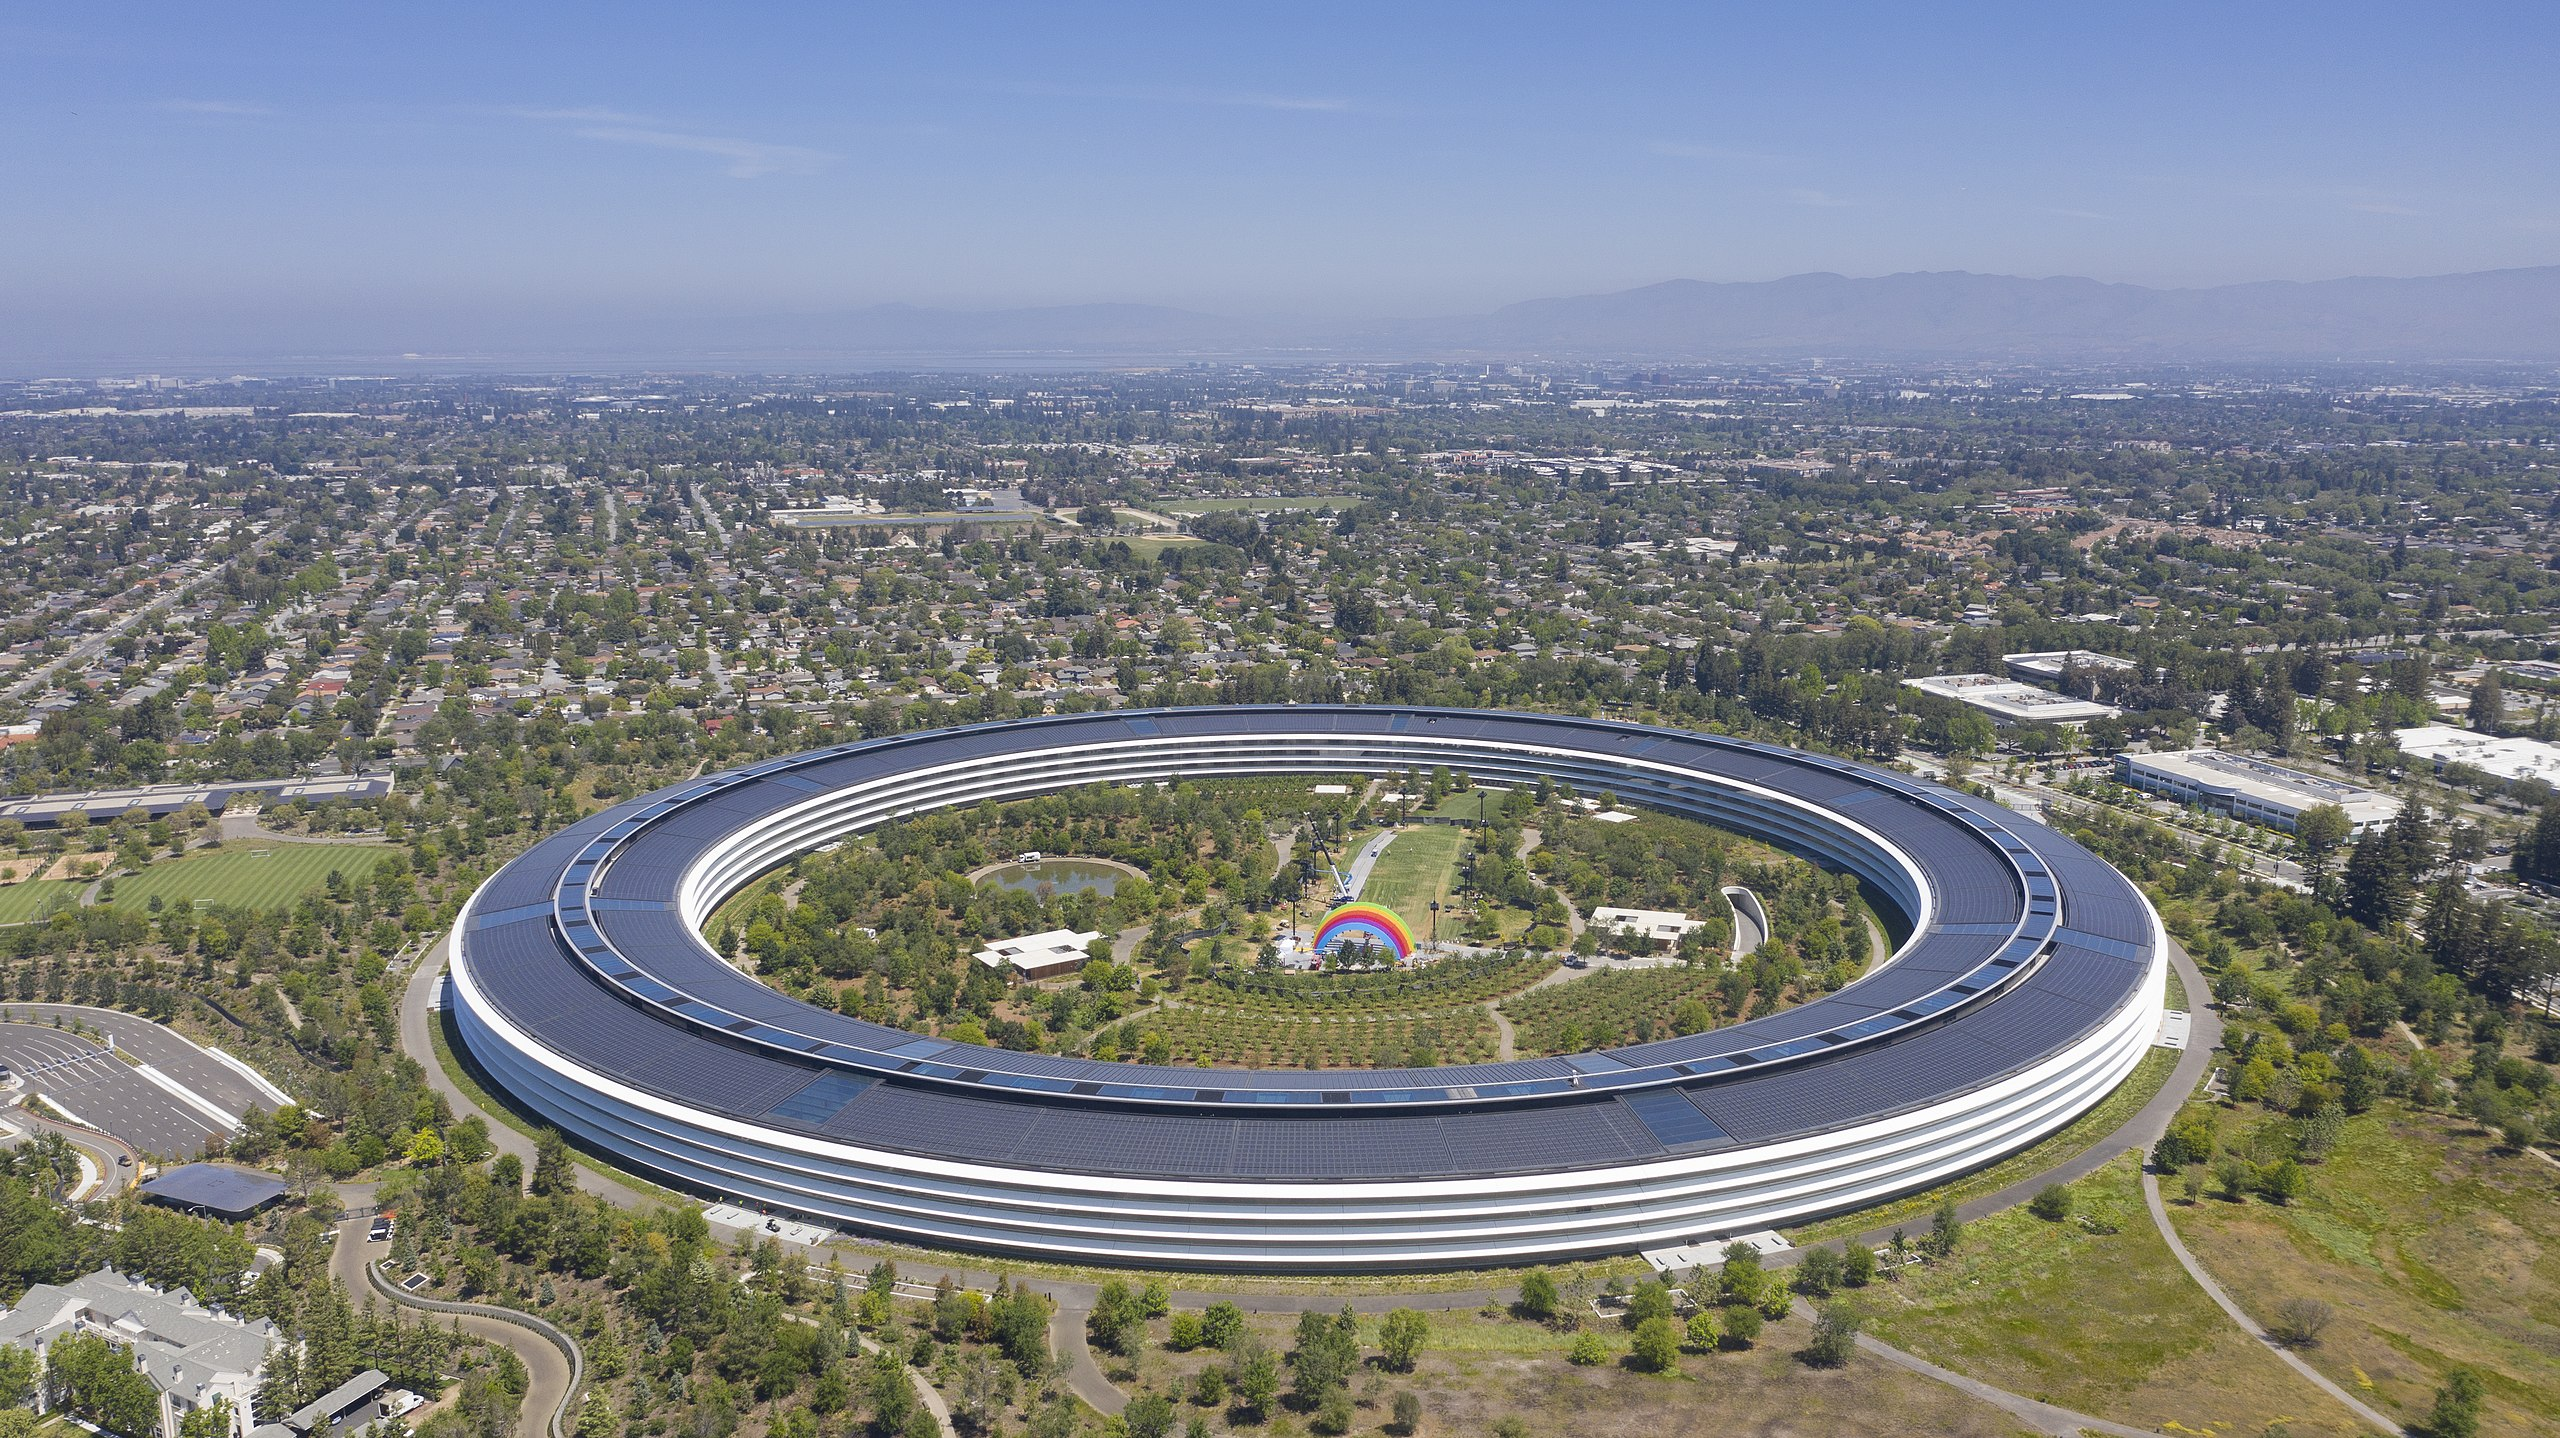 Apple park cupertino 2019.jpg